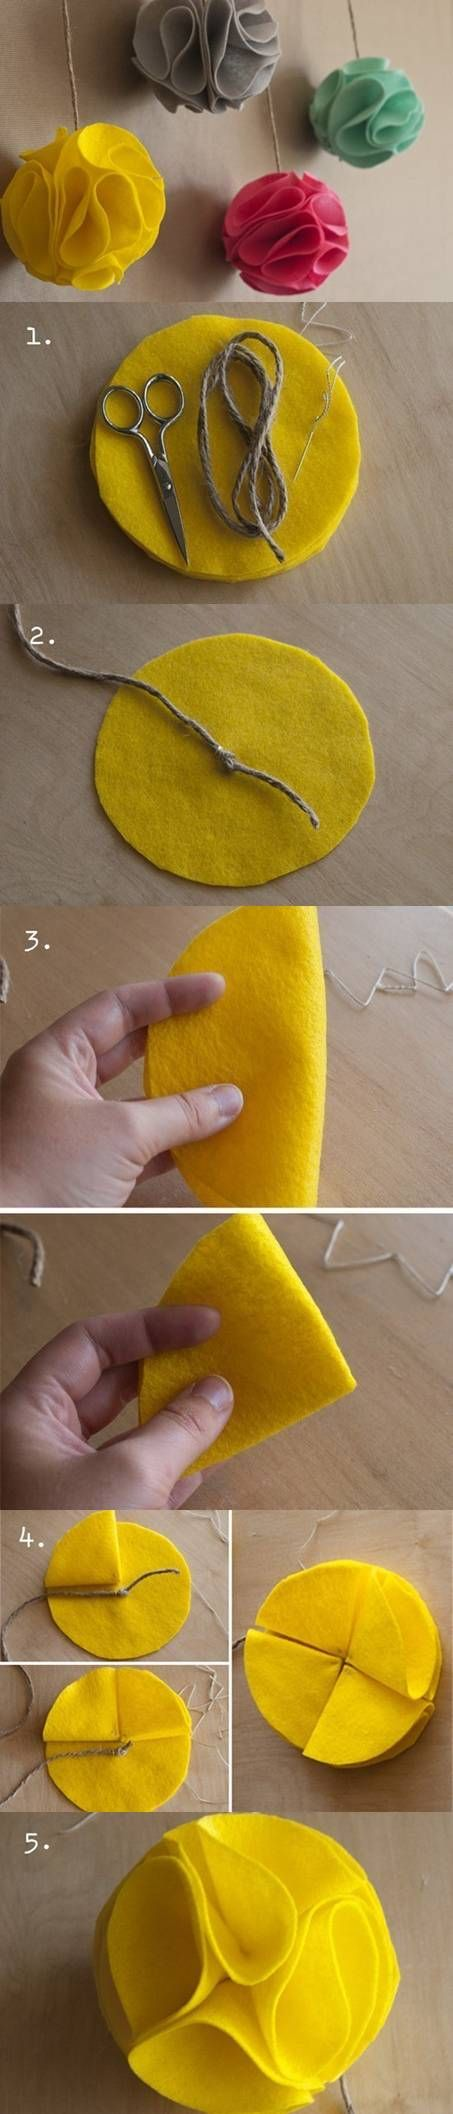 DIY Felt Decorative Balls